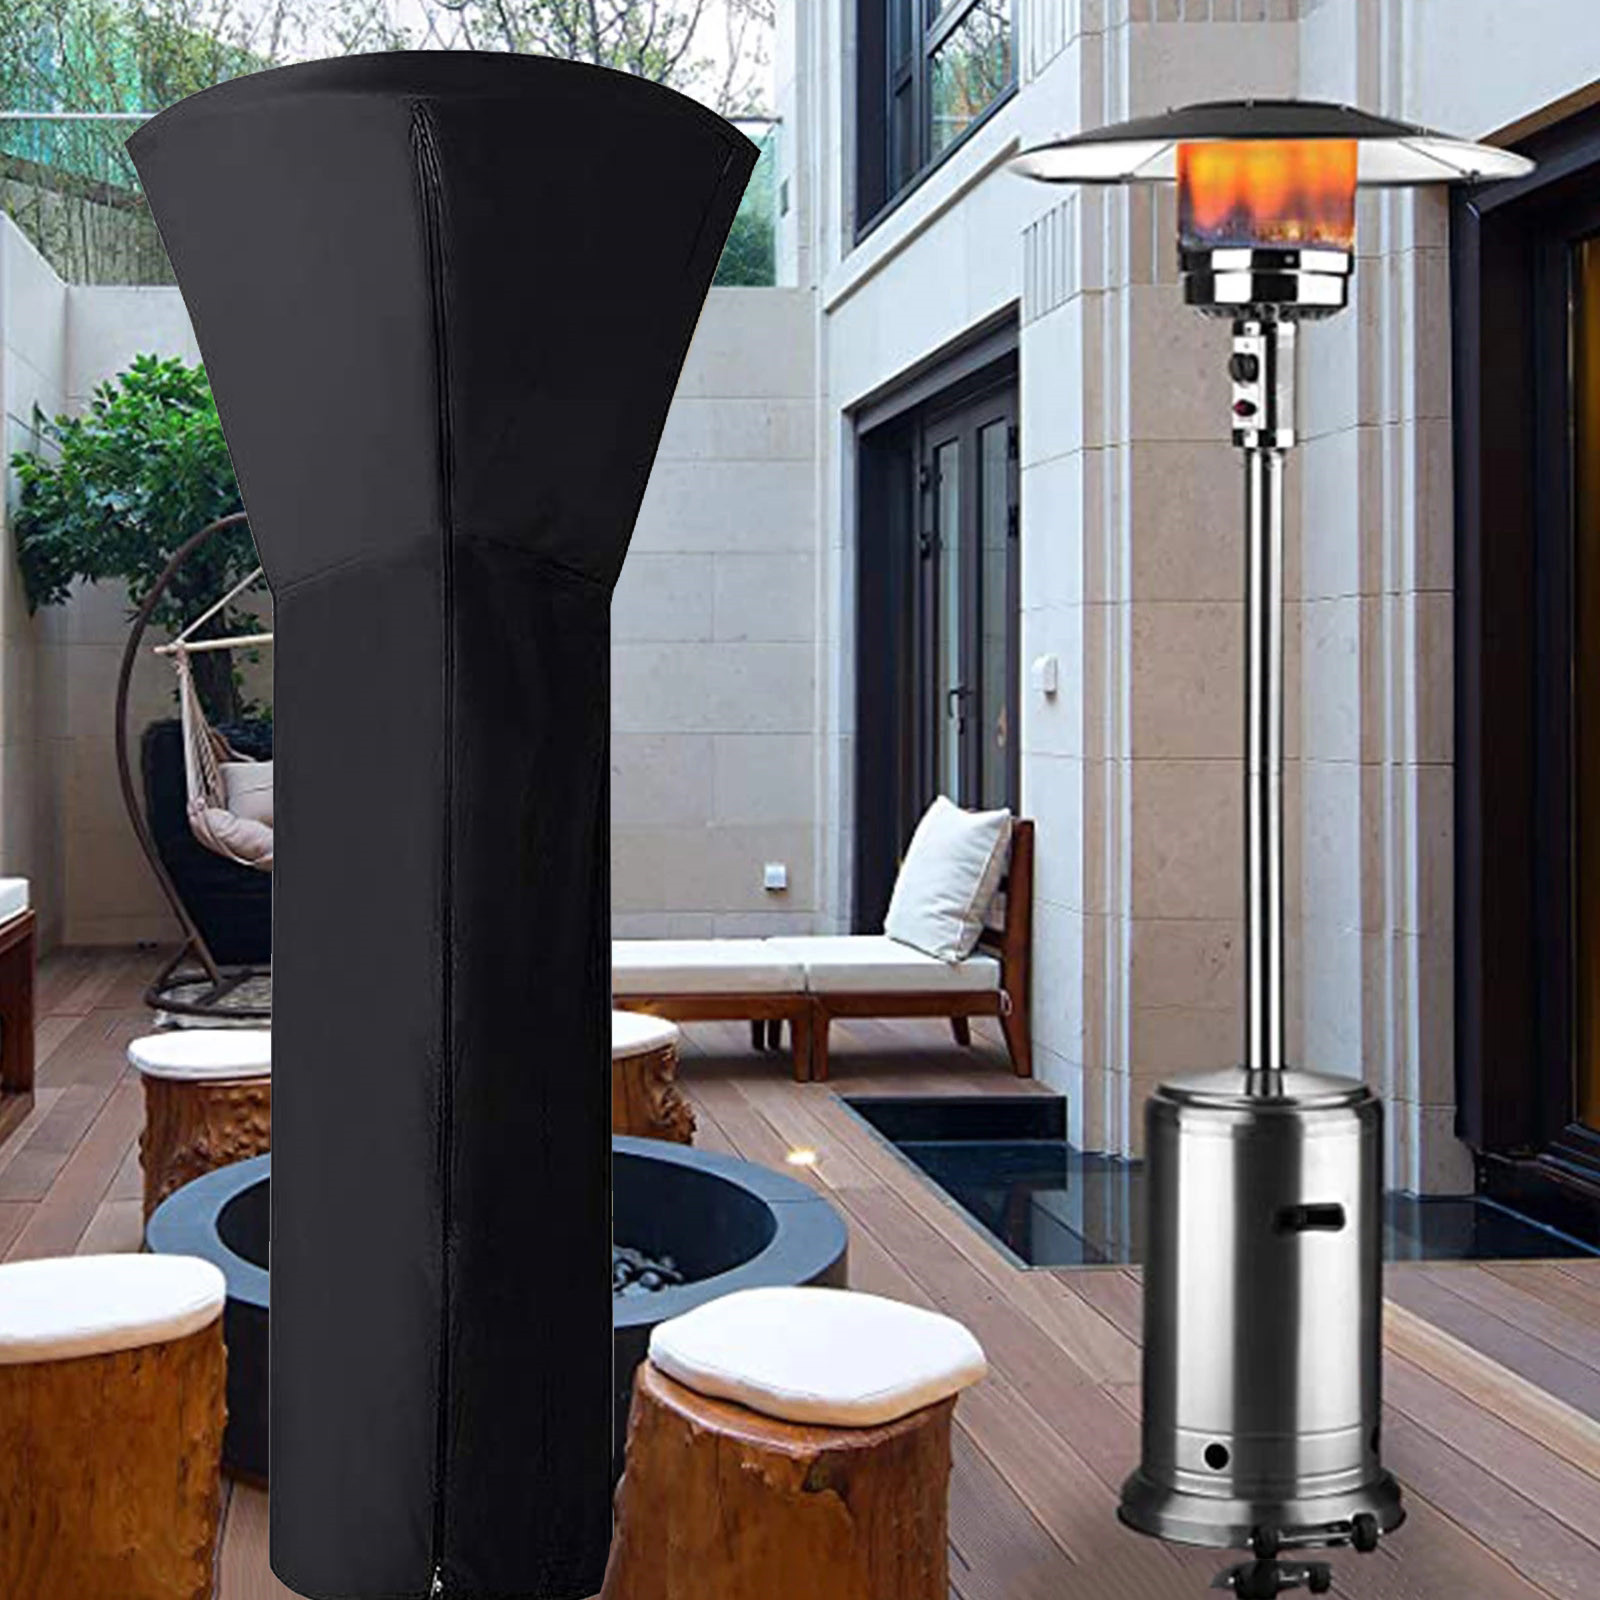 outdoor patio heater covers waterproof with zipper heavy duty round stand up patio heater cover outdoor include strut 89 h x 33 d x 19 l black